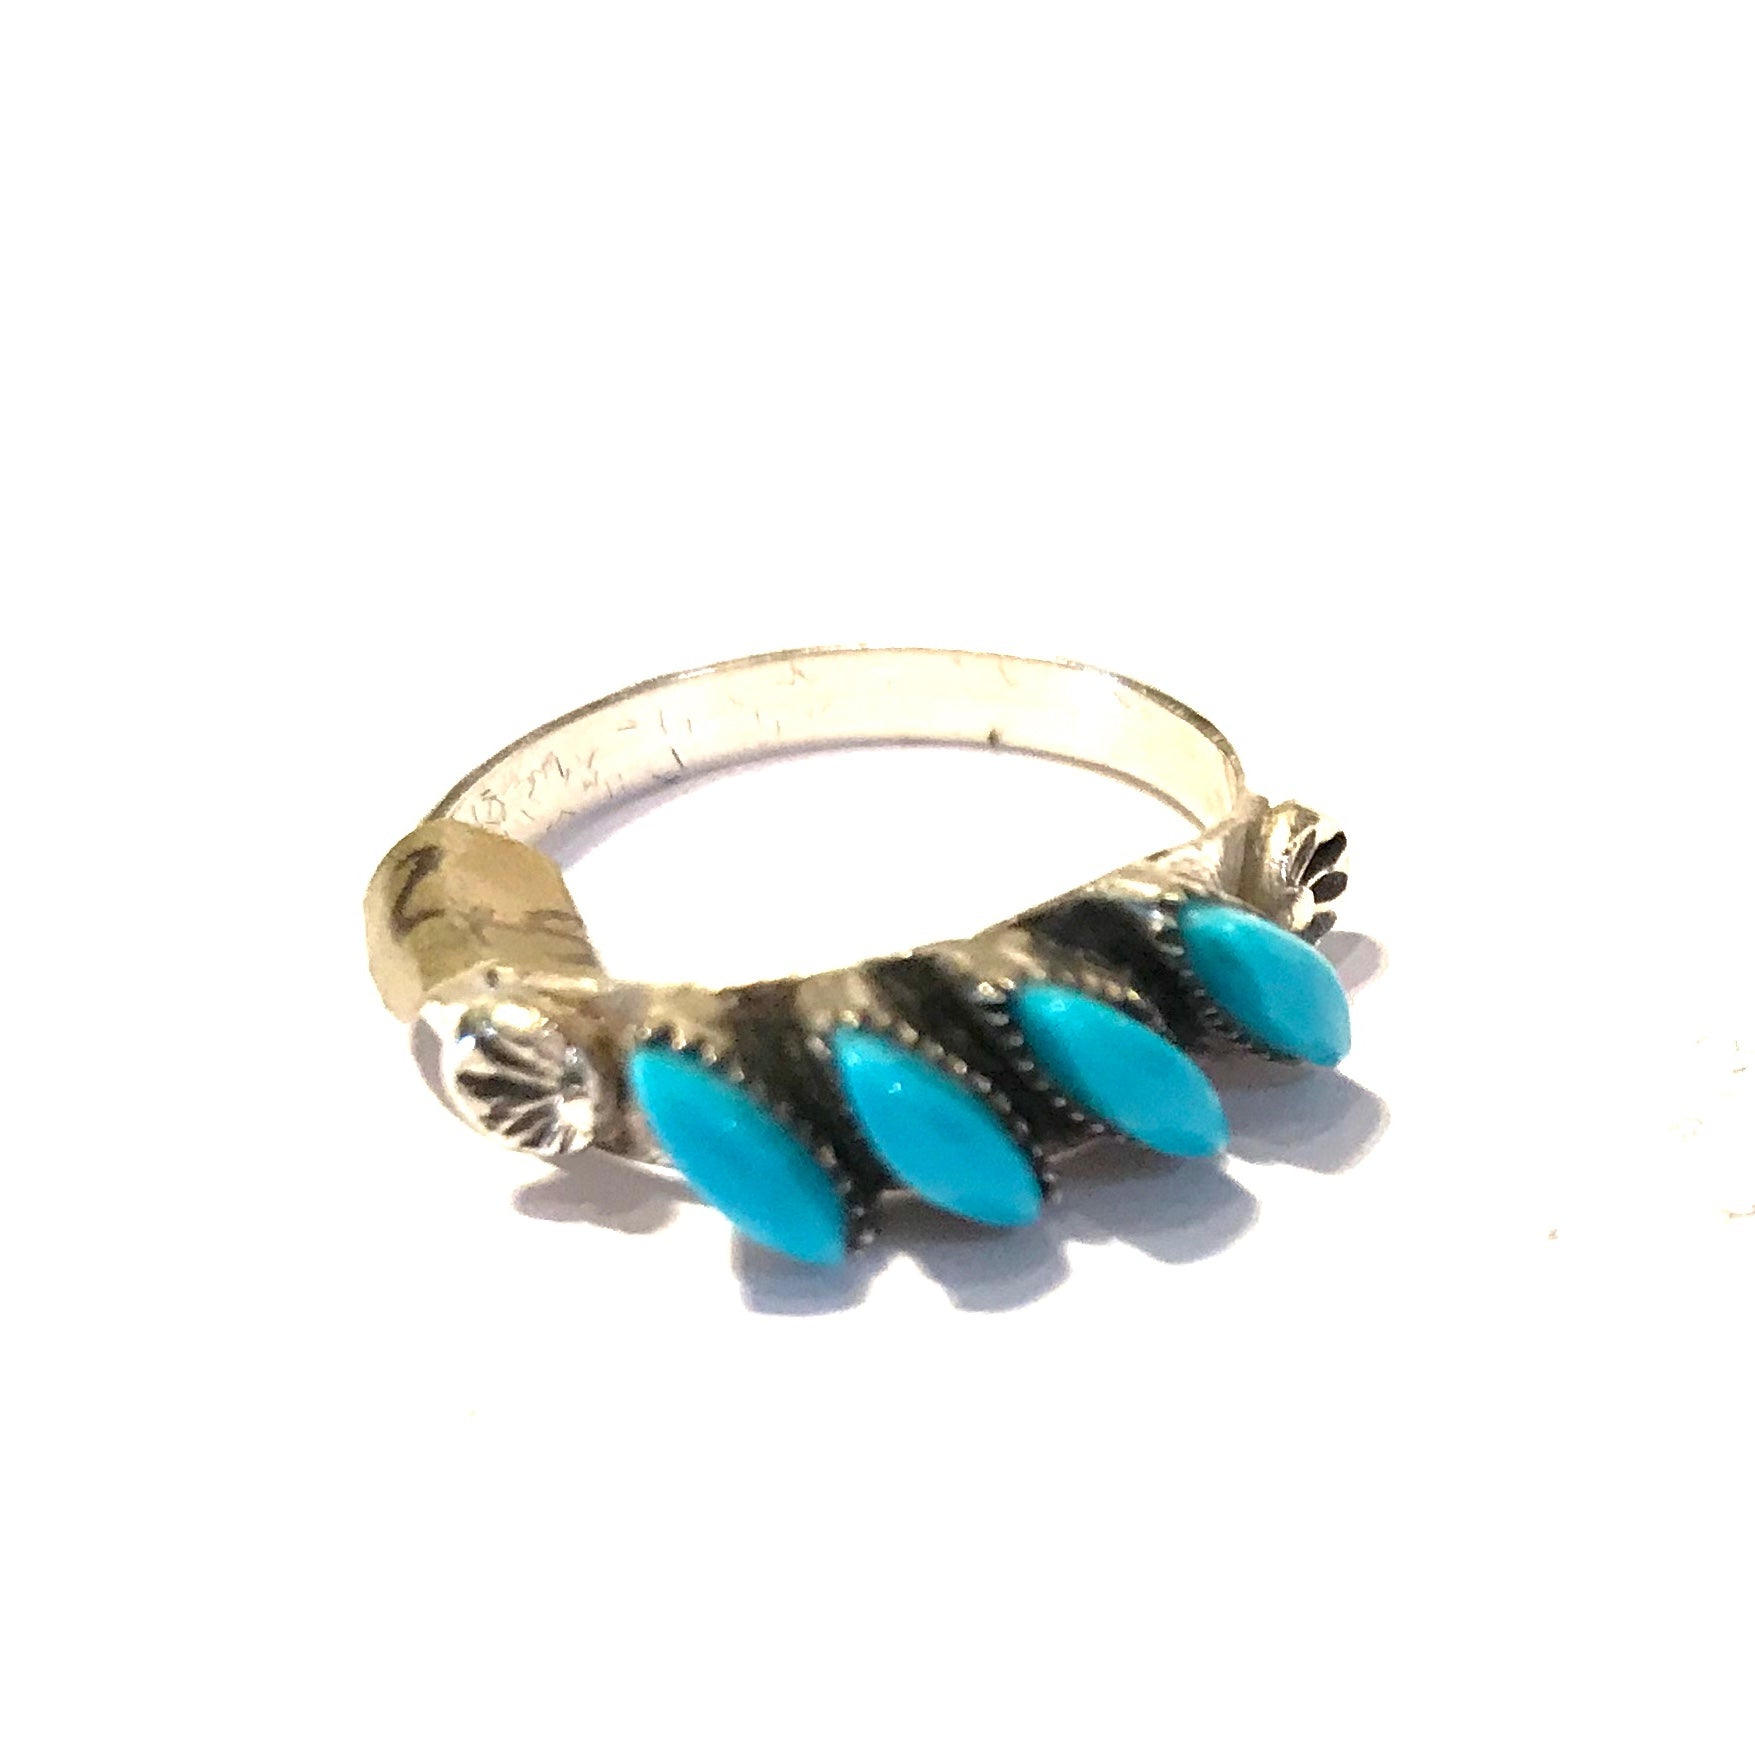 Small Zuni turquoise stacking ring